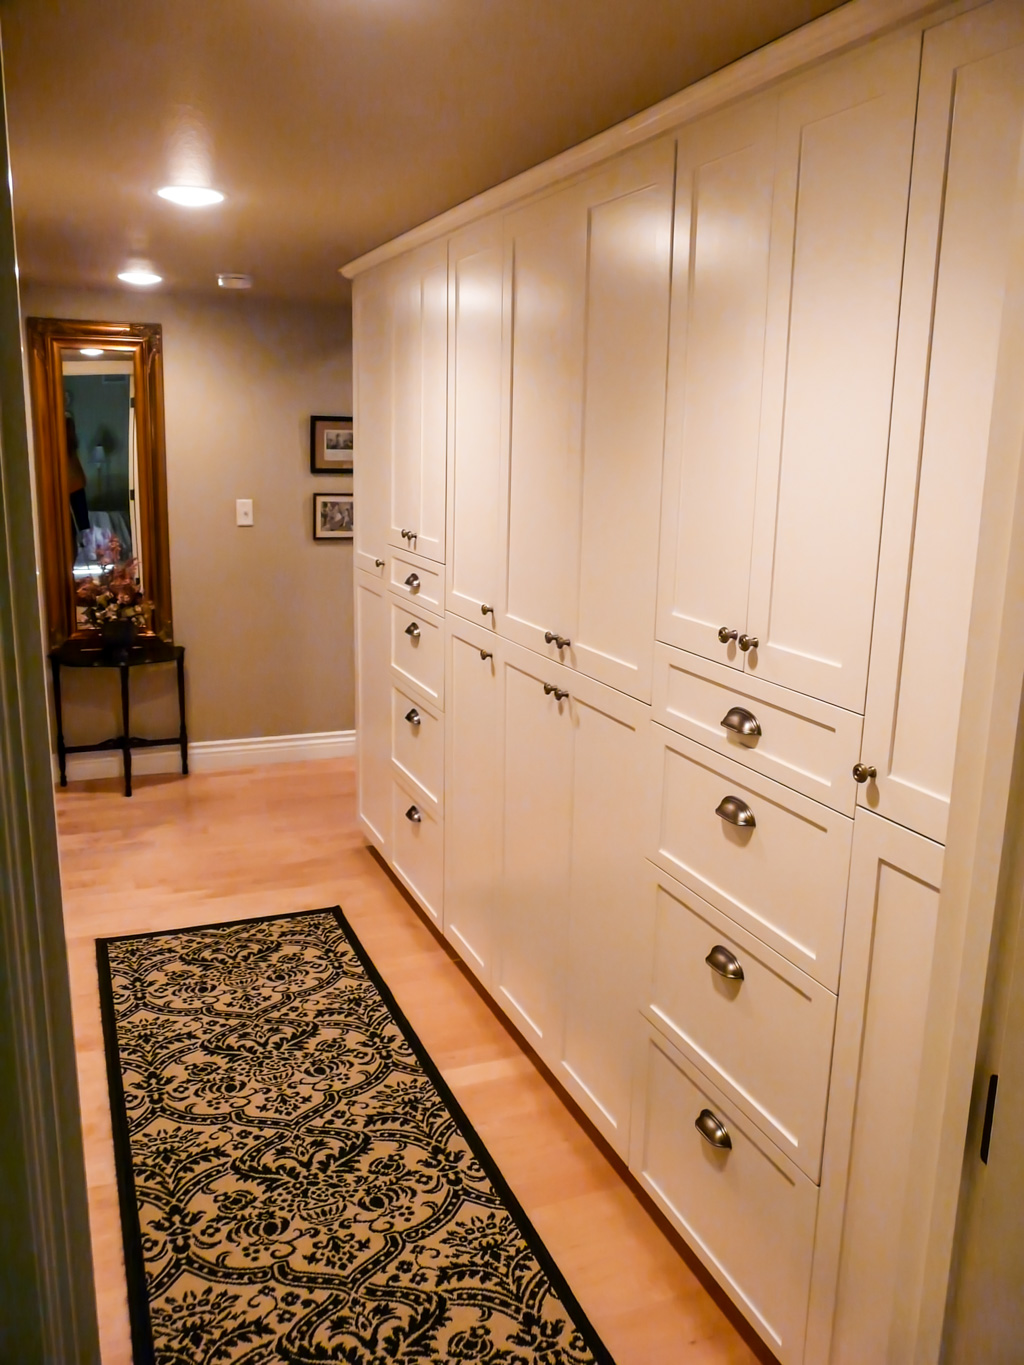 Upscale Country Cabinets and Bedroom  Danilo Nesovic